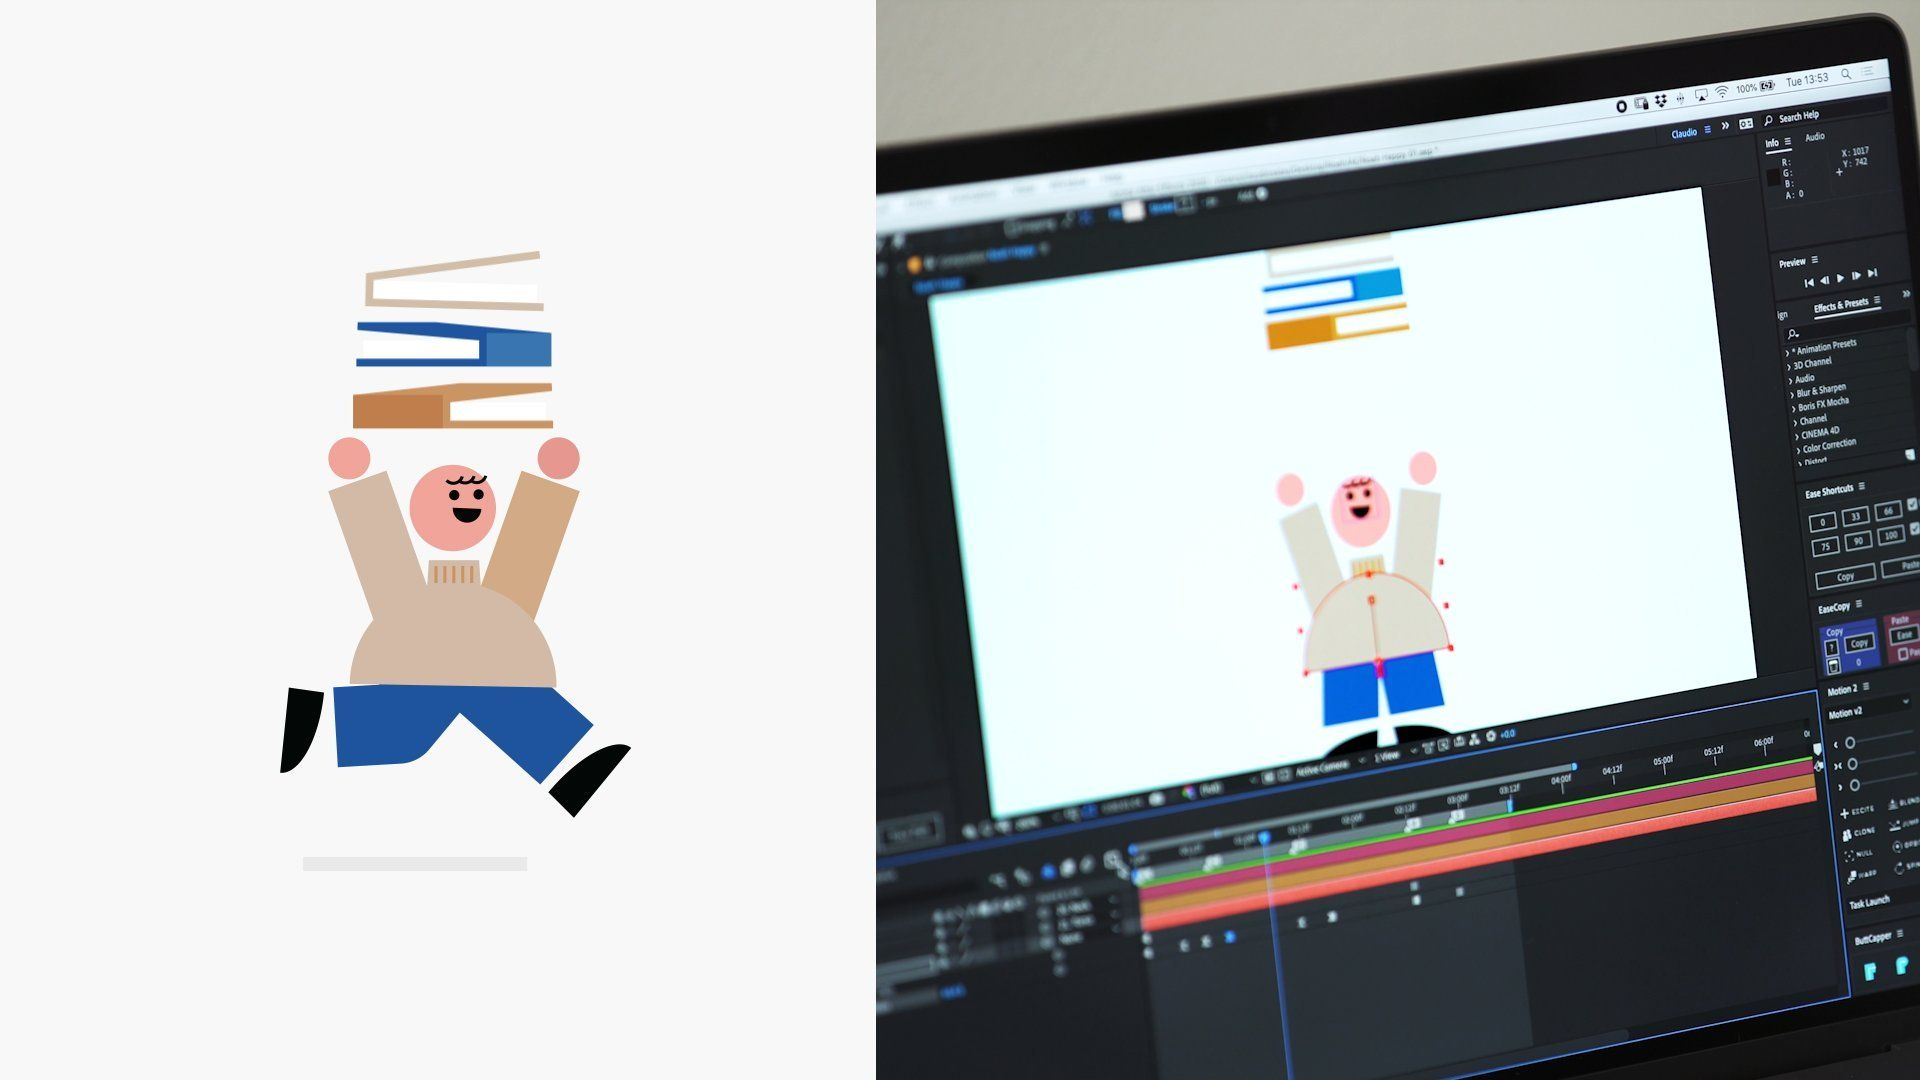 Animating Emotions Using Movement to Convey a Feeling